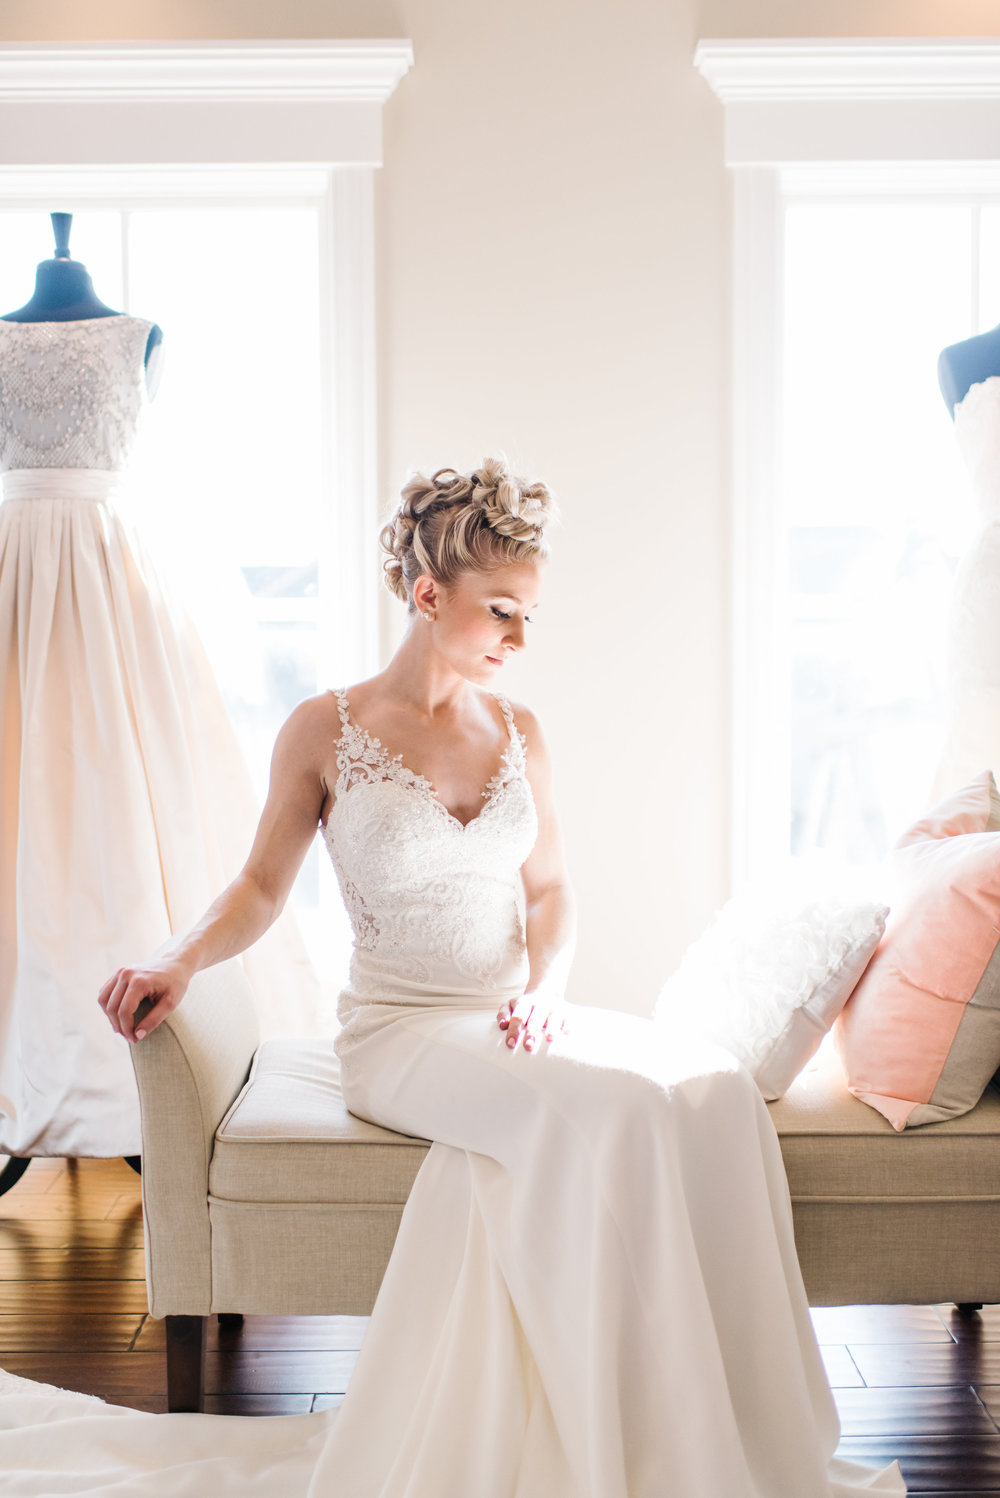 STYLED SHOOT | Make Wedding Dress Shopping Unforgettable - Brittany Marie Photography